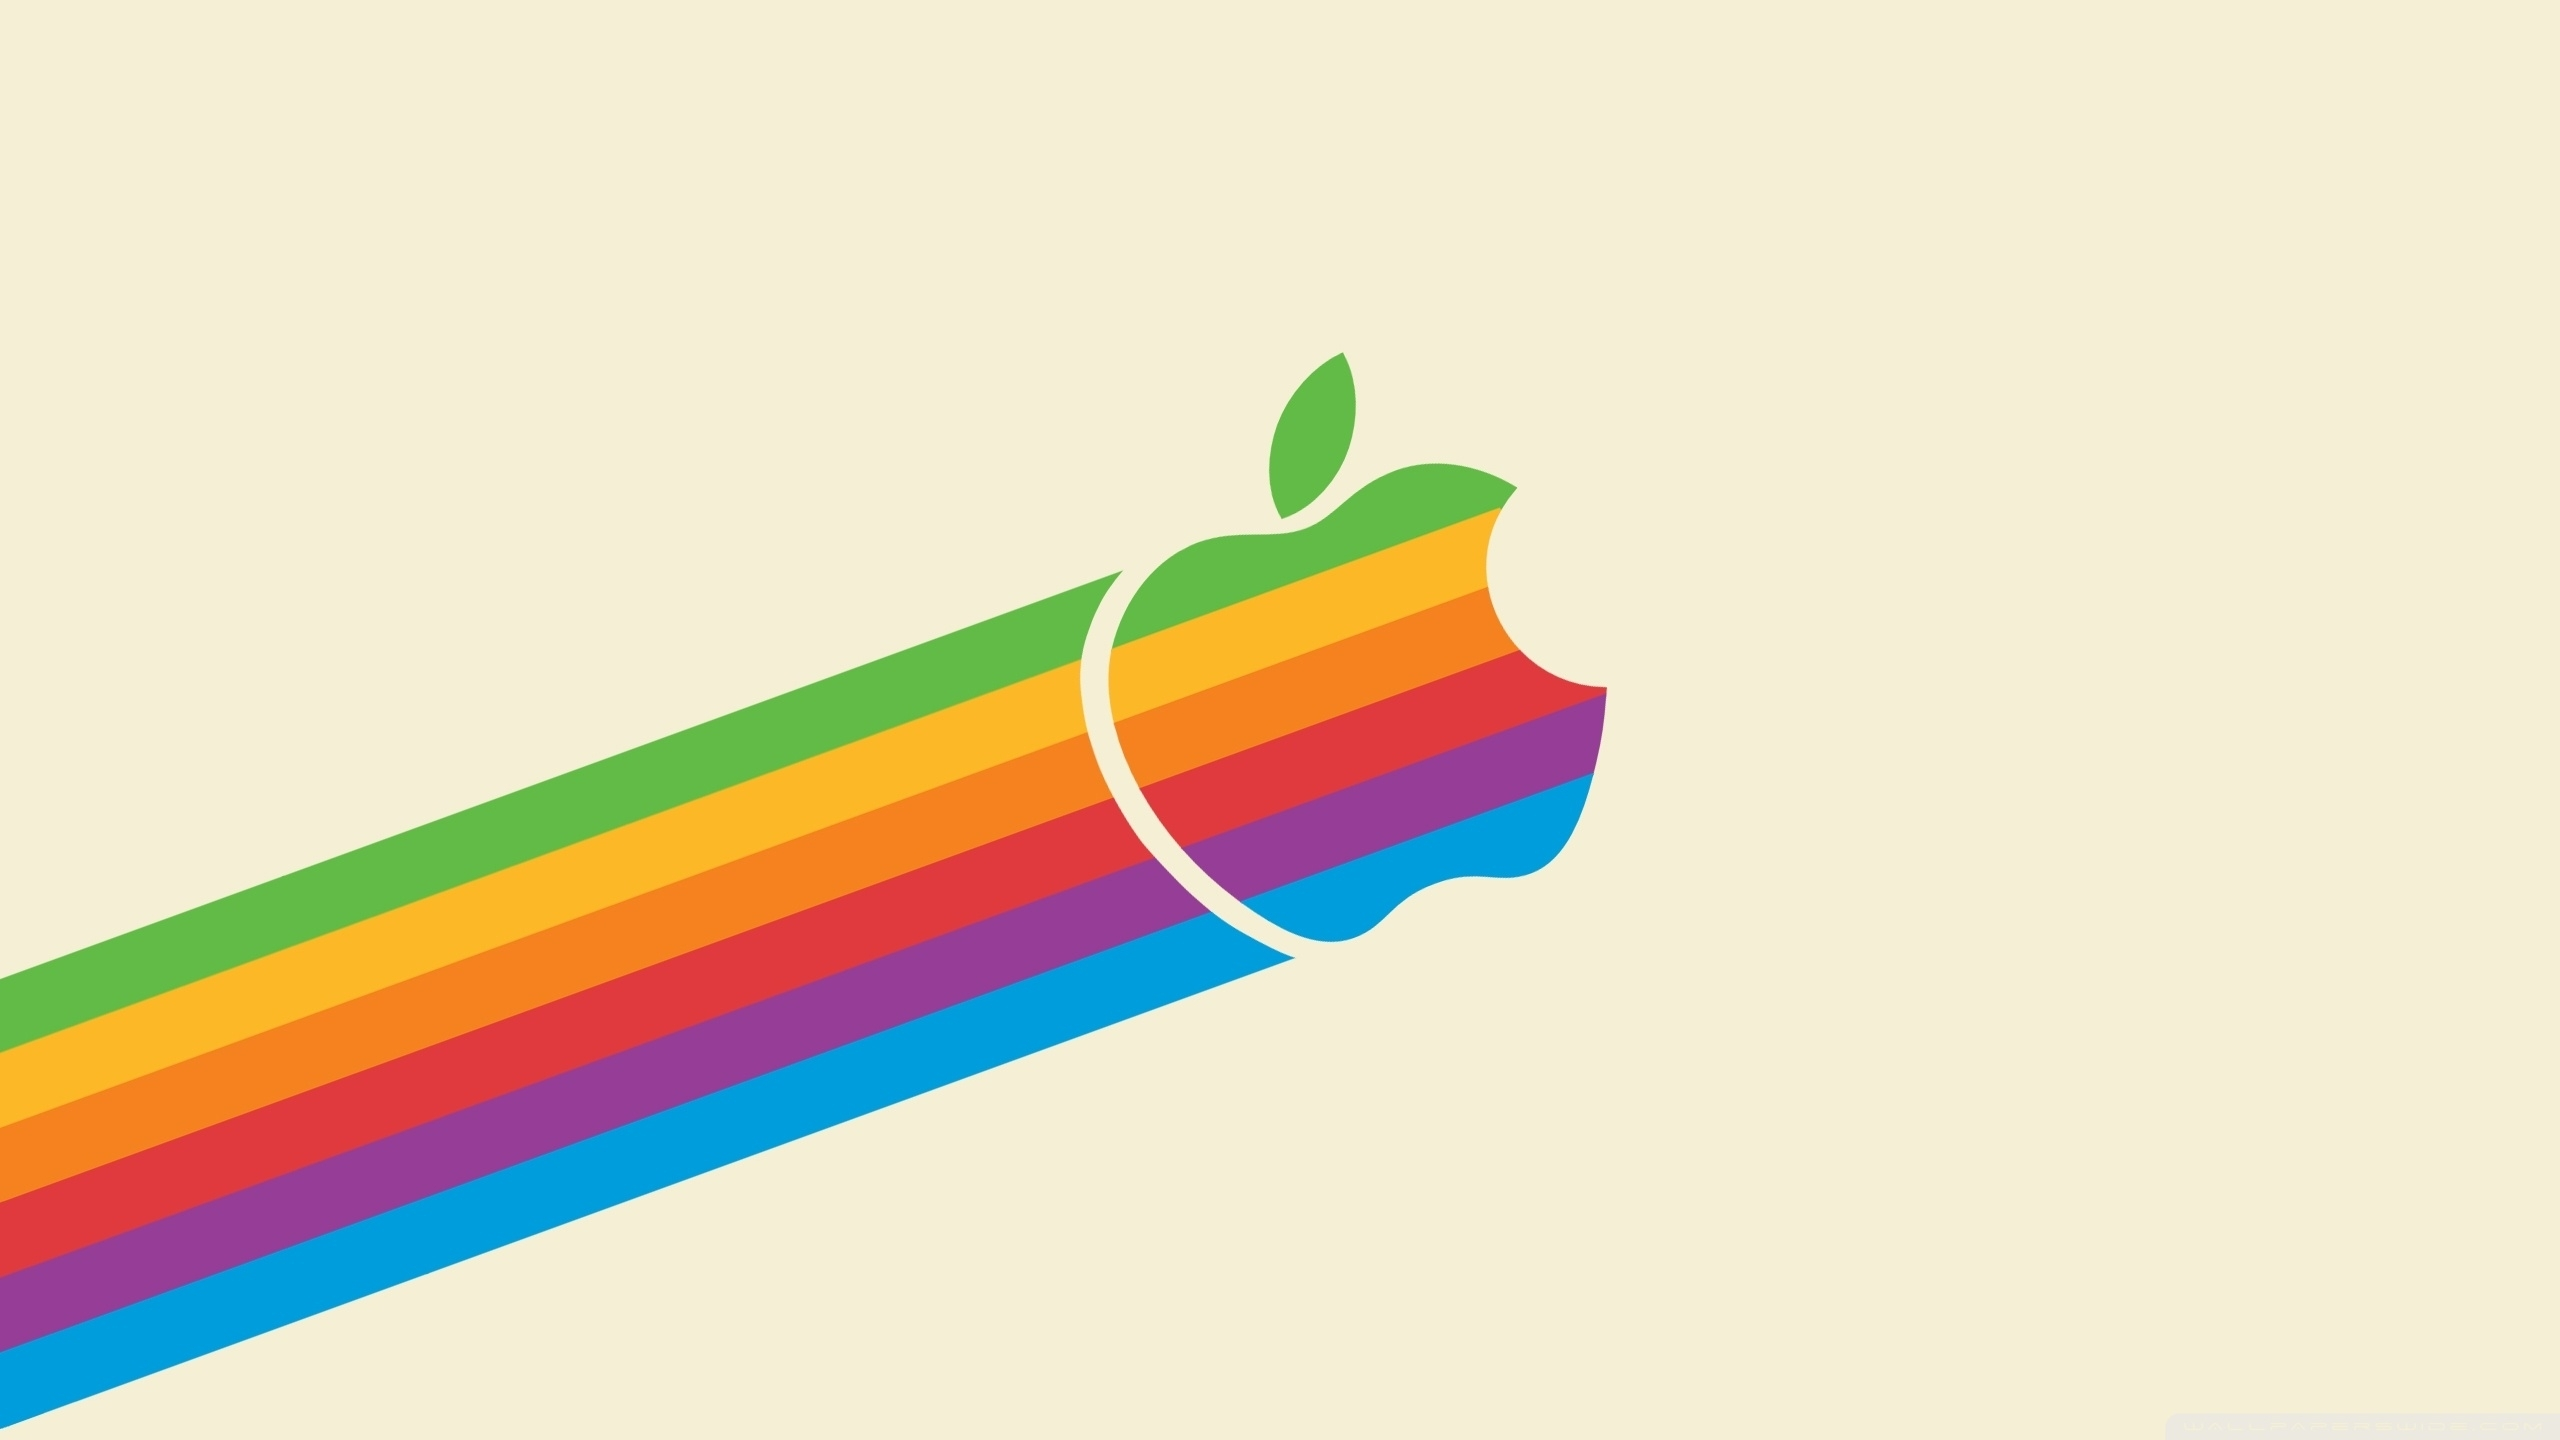 apple logo rainbow ❤ 4k hd desktop wallpaper for 4k ultra hd tv